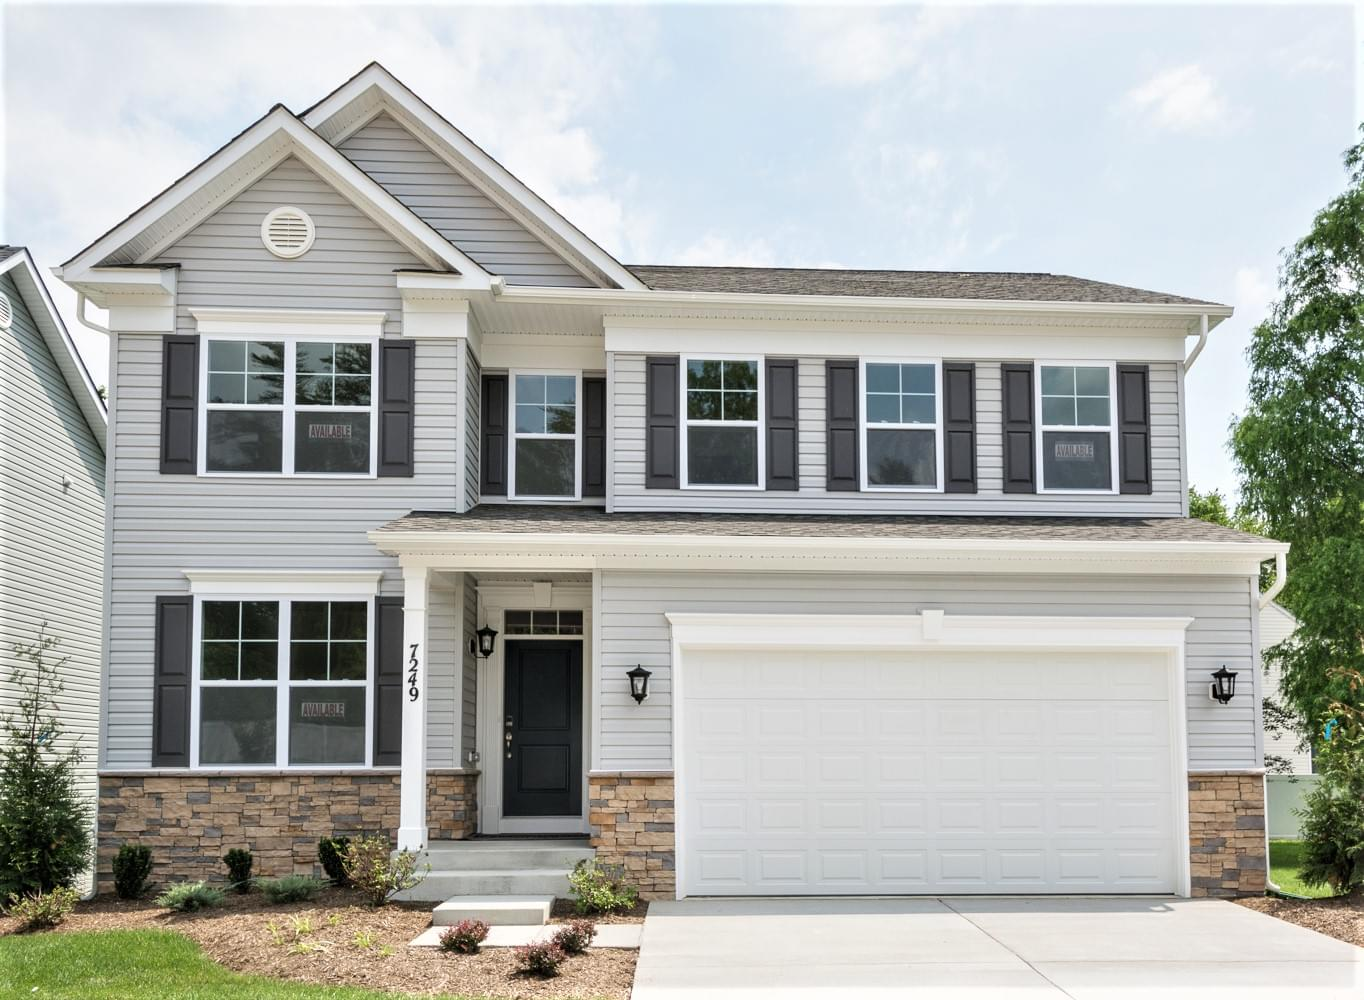 What Sets Sturbridge Apart From Other Maryland Builders